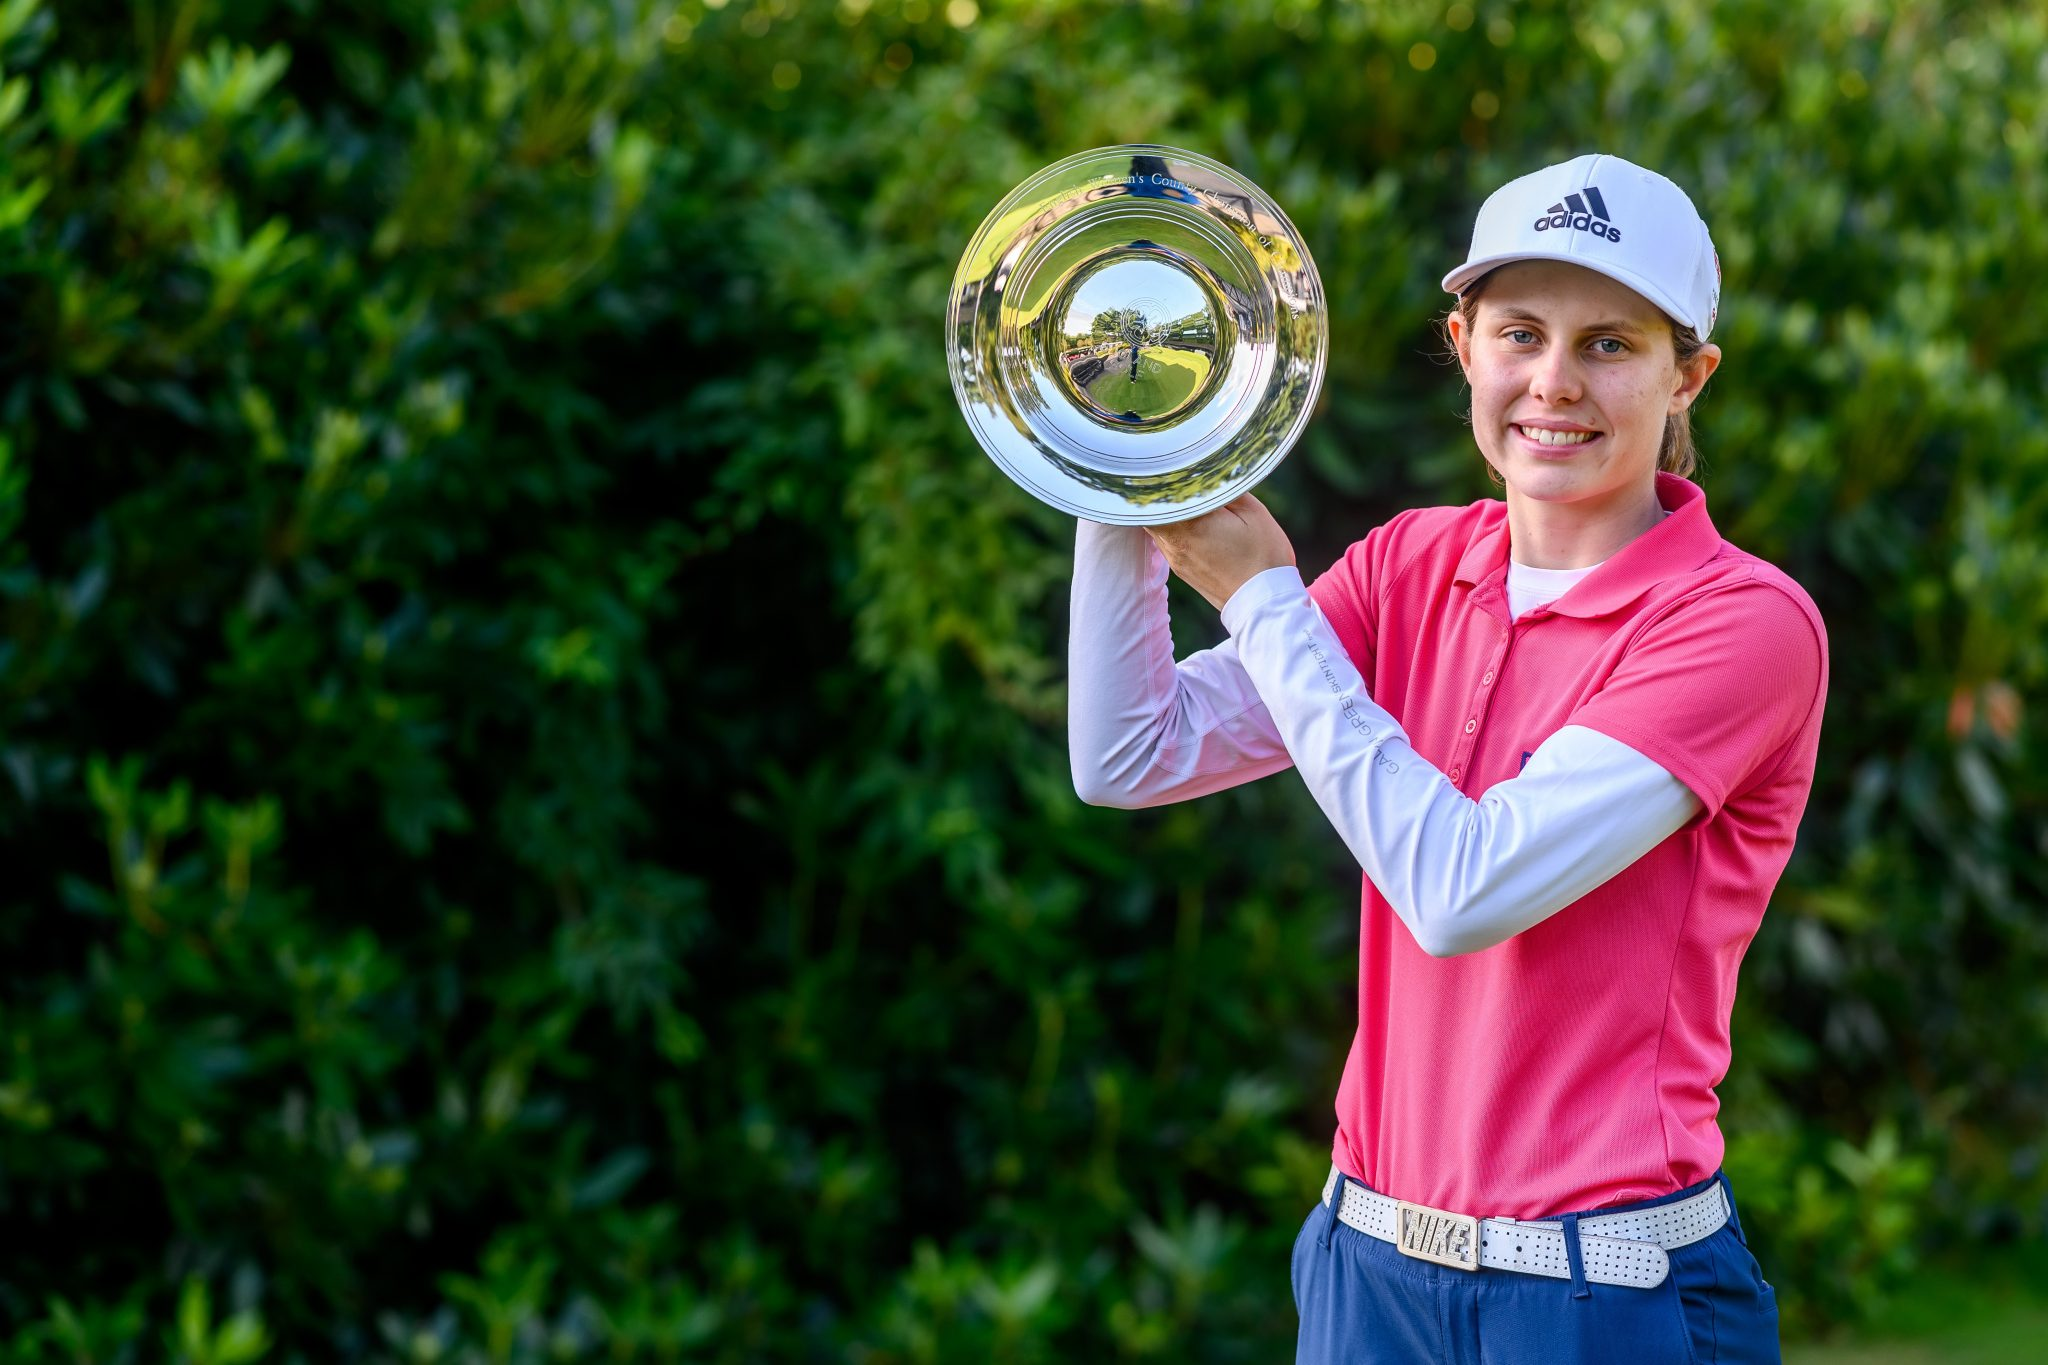 Bel Wardle becomes Women's Champion of Champions with convincing performance